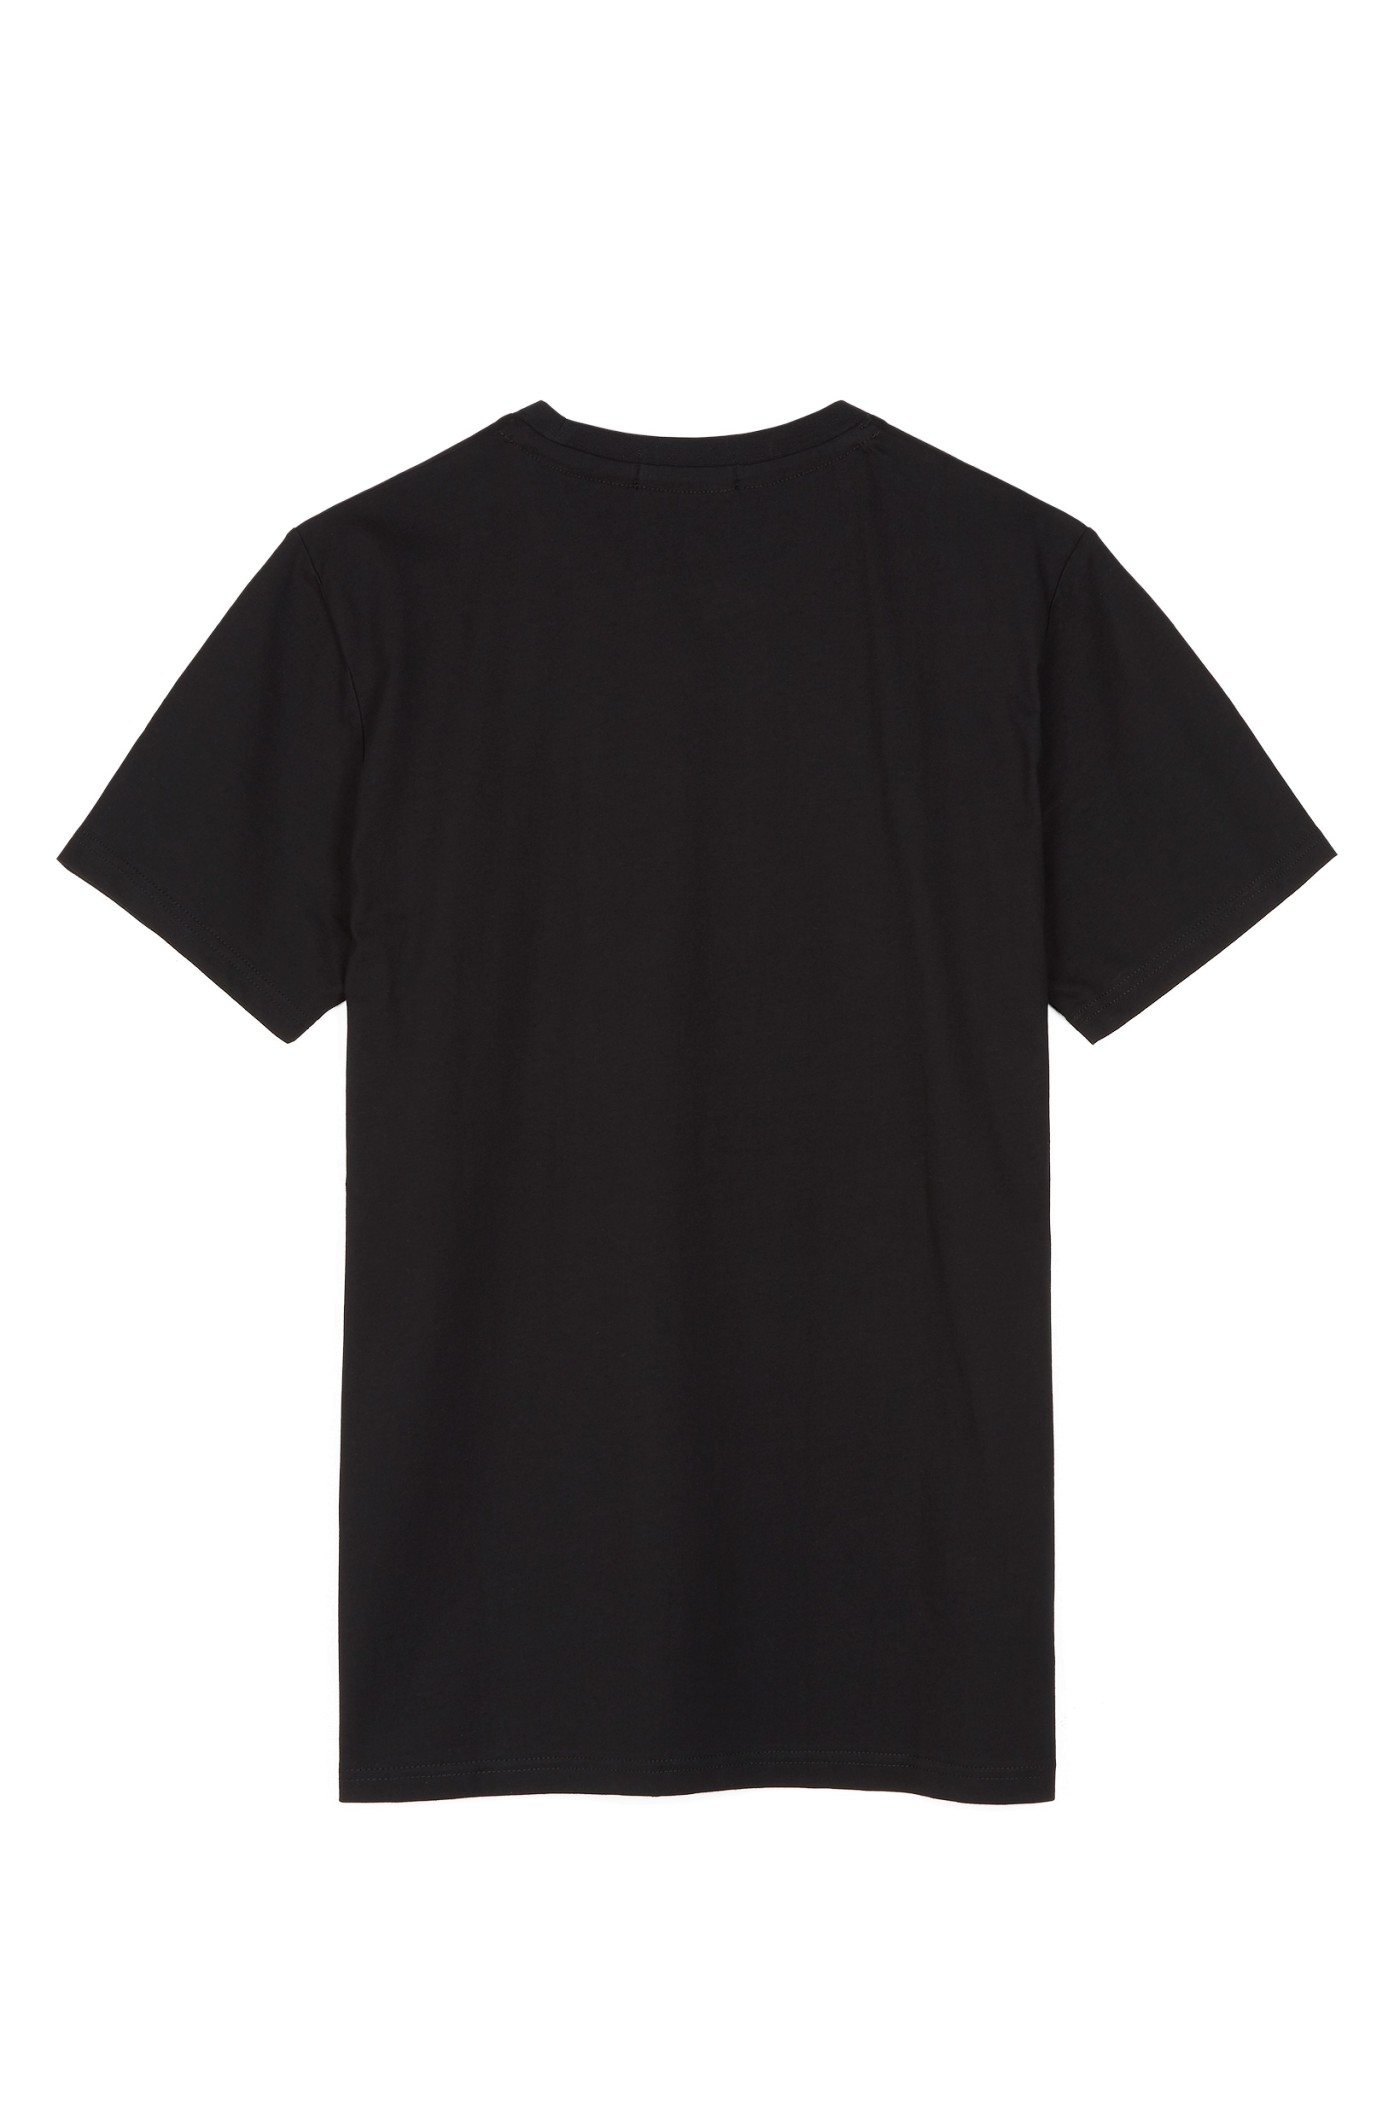 Fred perry crew neck t shirt black for T shirt sprüche m nner